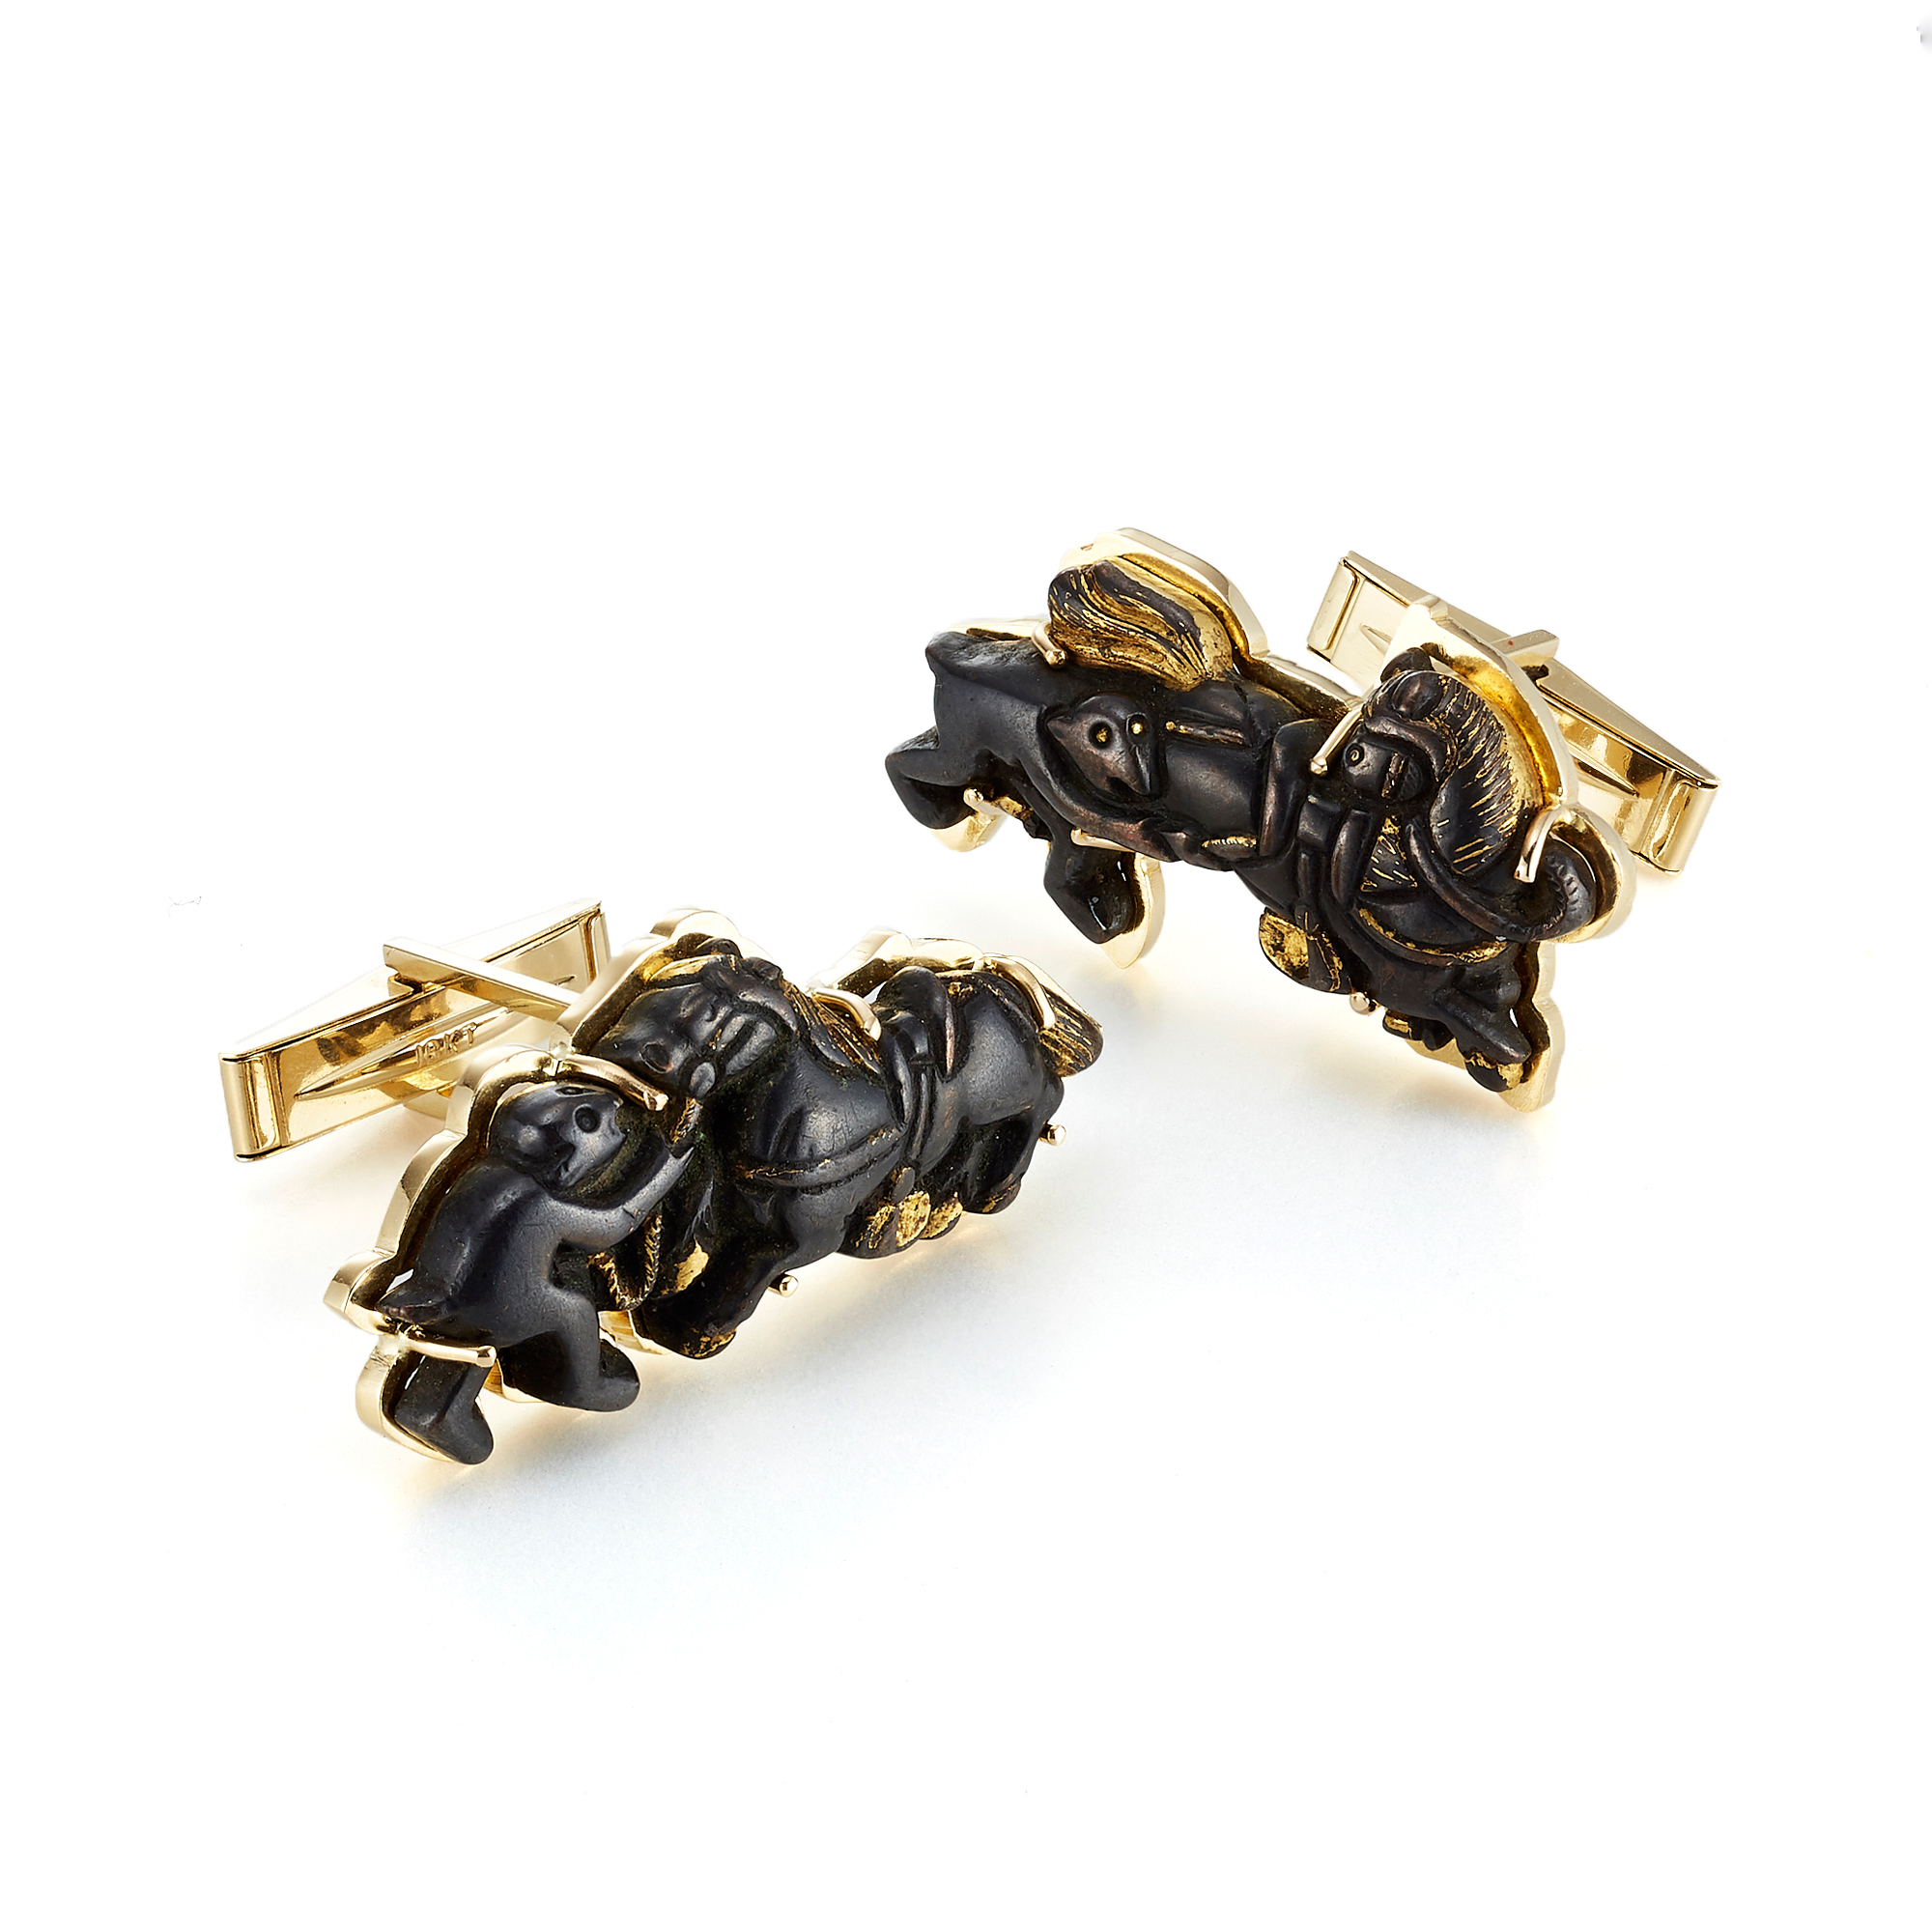 Gump's Monkey & Horse Antique Menuki Cufflinks